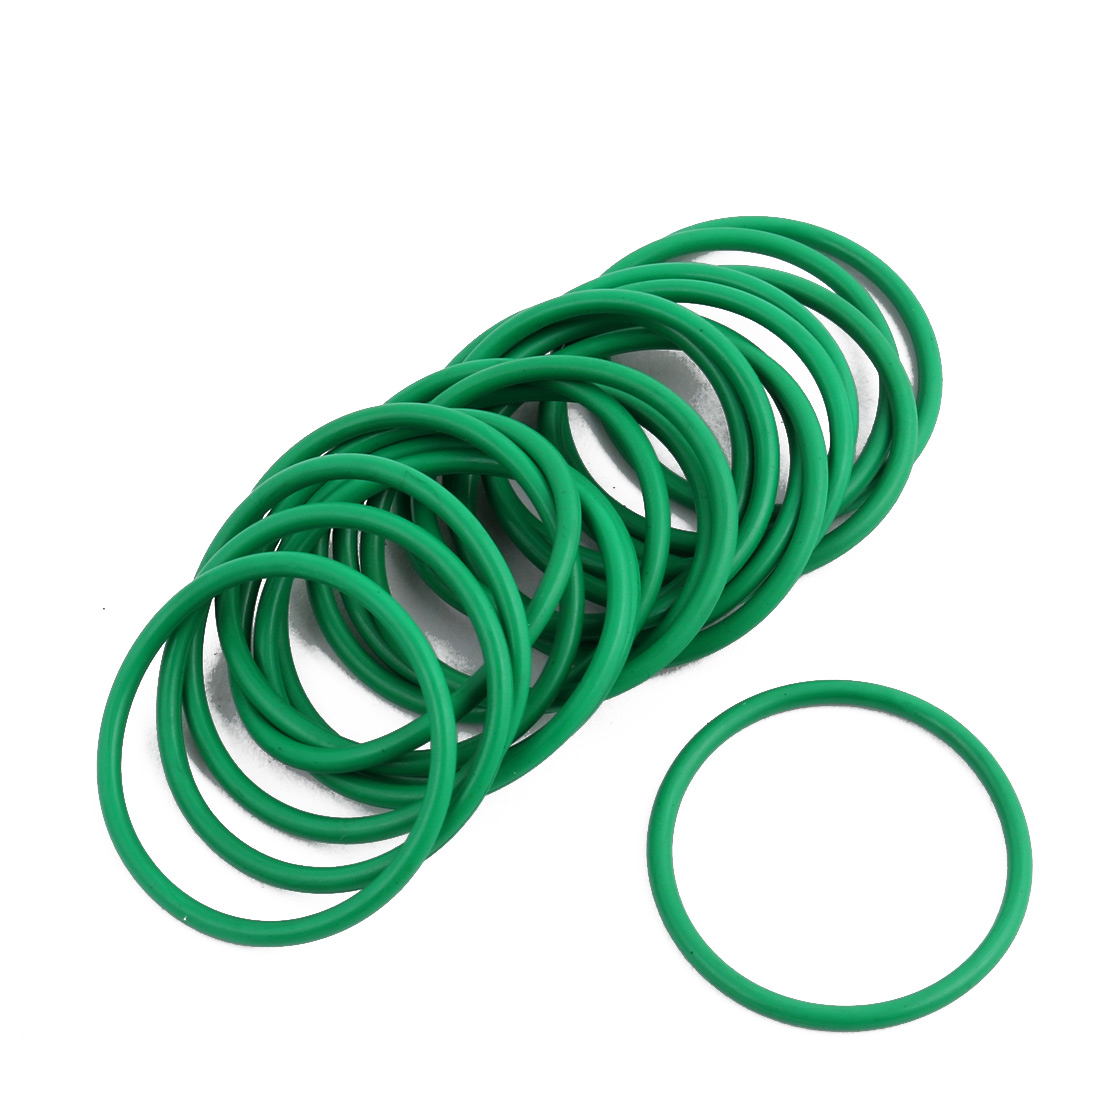 20Pcs Green 29 x 1.9mm Industrial Flexible Rubber O Ring Oil Sealing Grommets